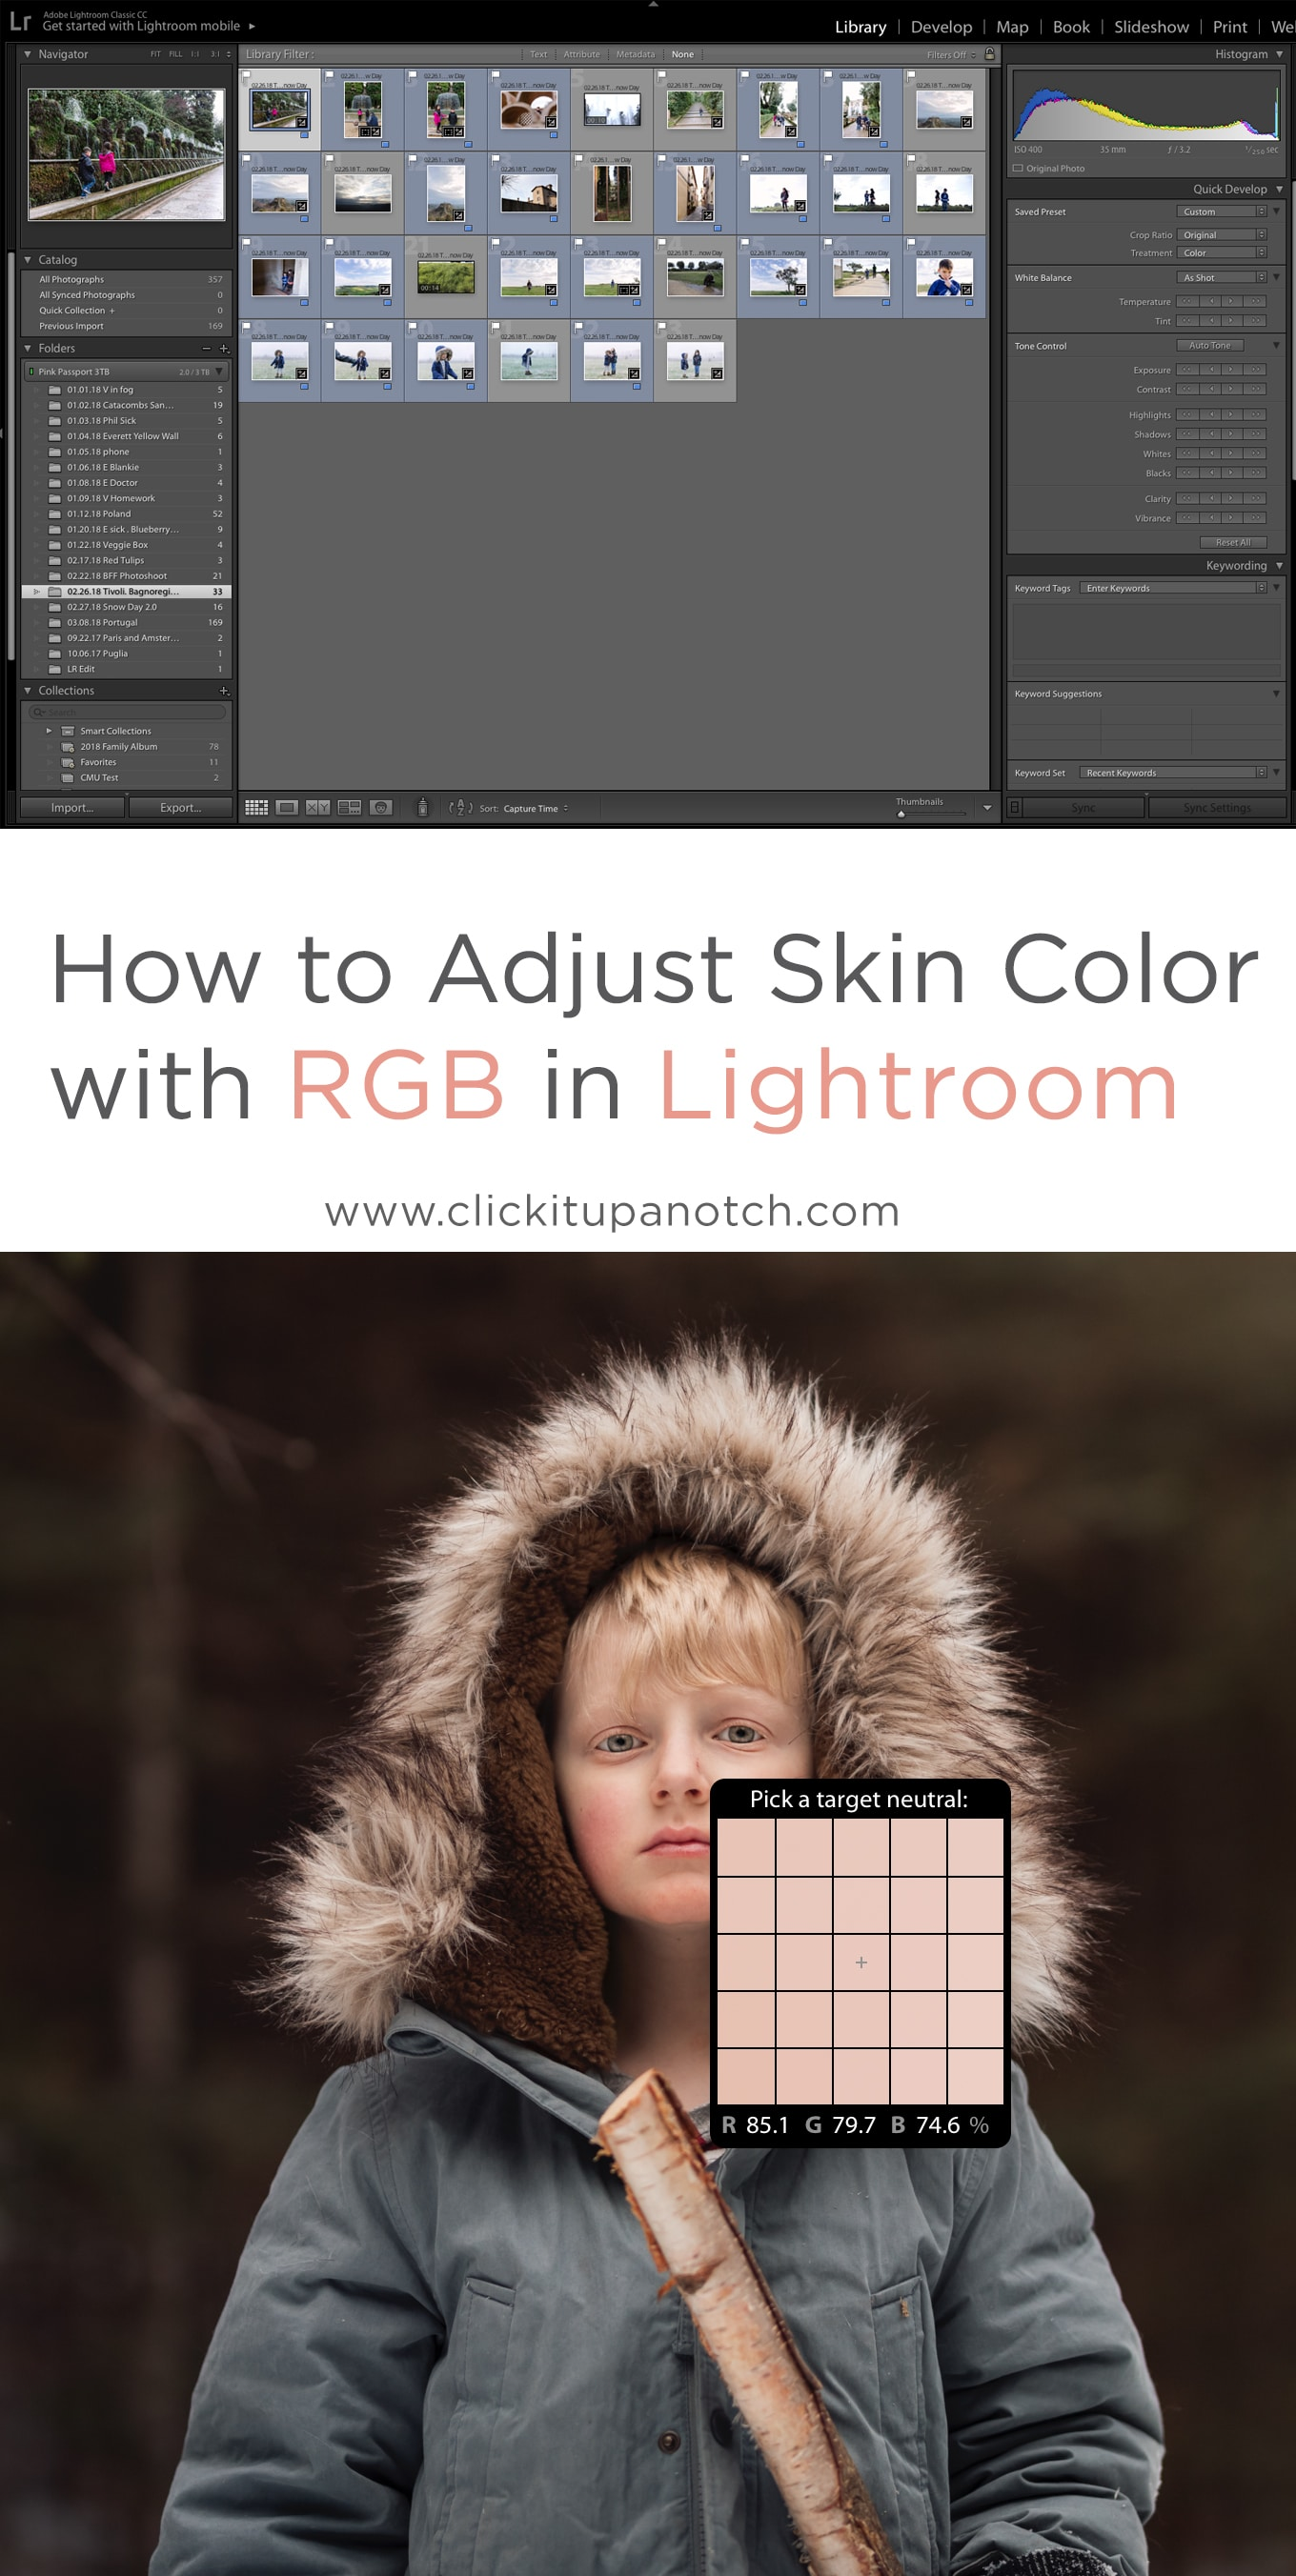 "This has RGB numbers and tells you how to correct skin tones in camera and in Light room. Must Read - ""How to Adjust Skin Color with RGB in Lightroom"""